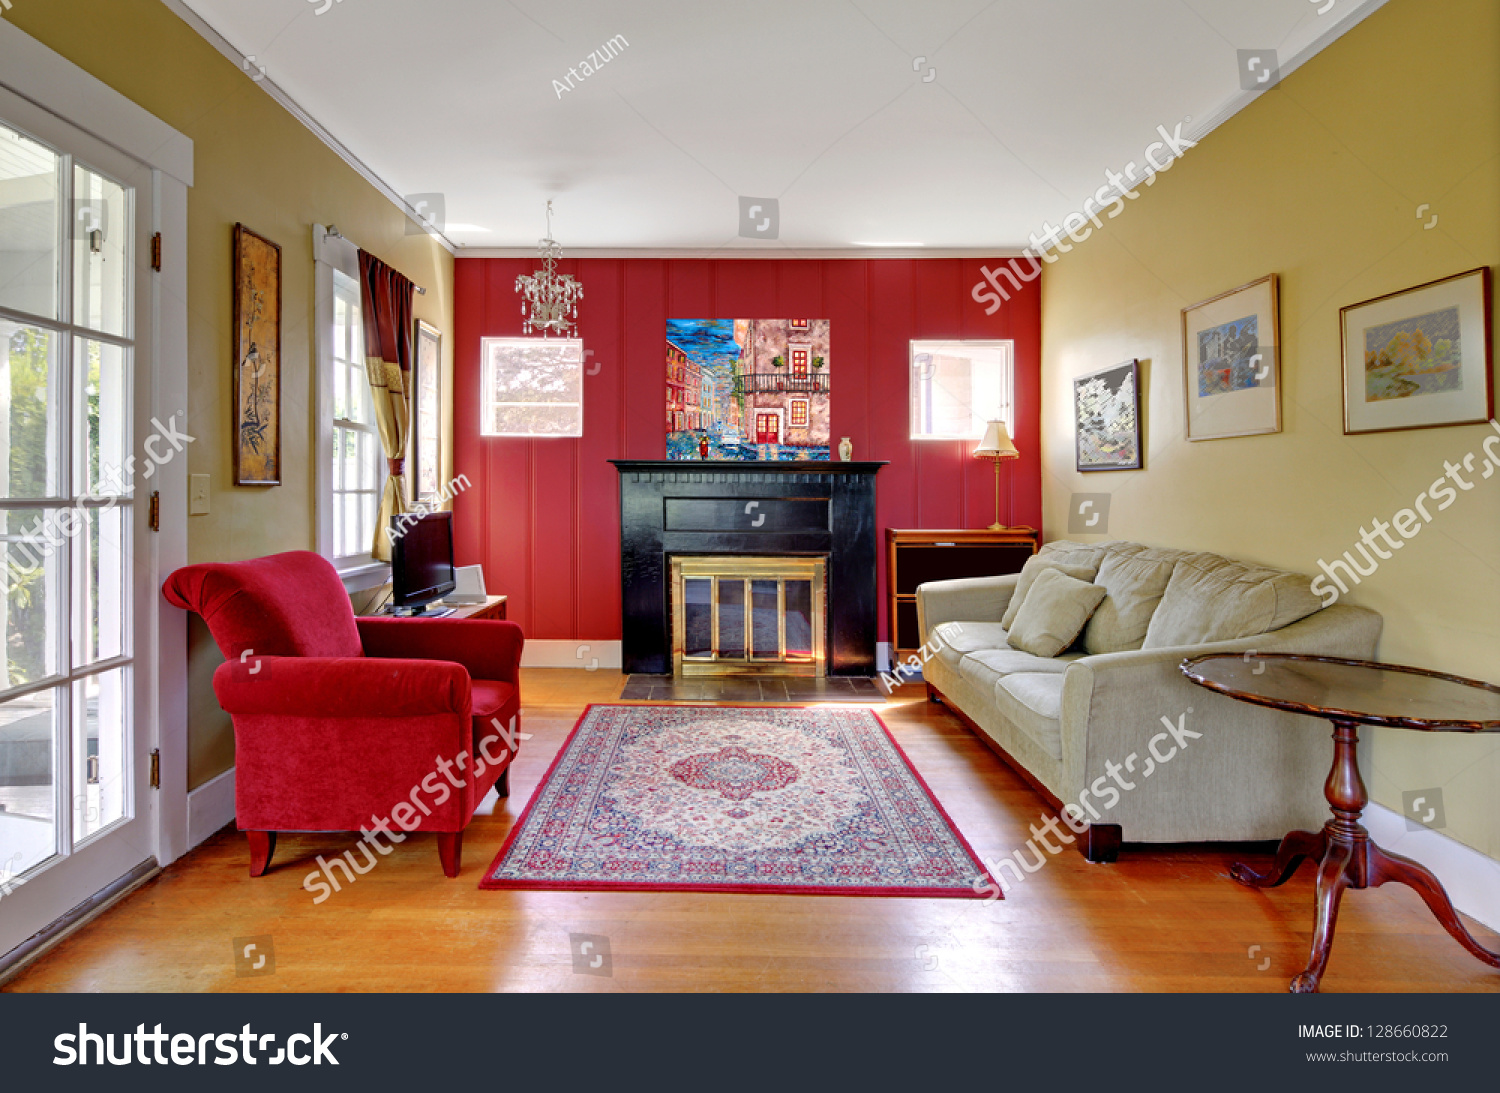 Living Room With Red And Yellow Walls And Fireplace In Old